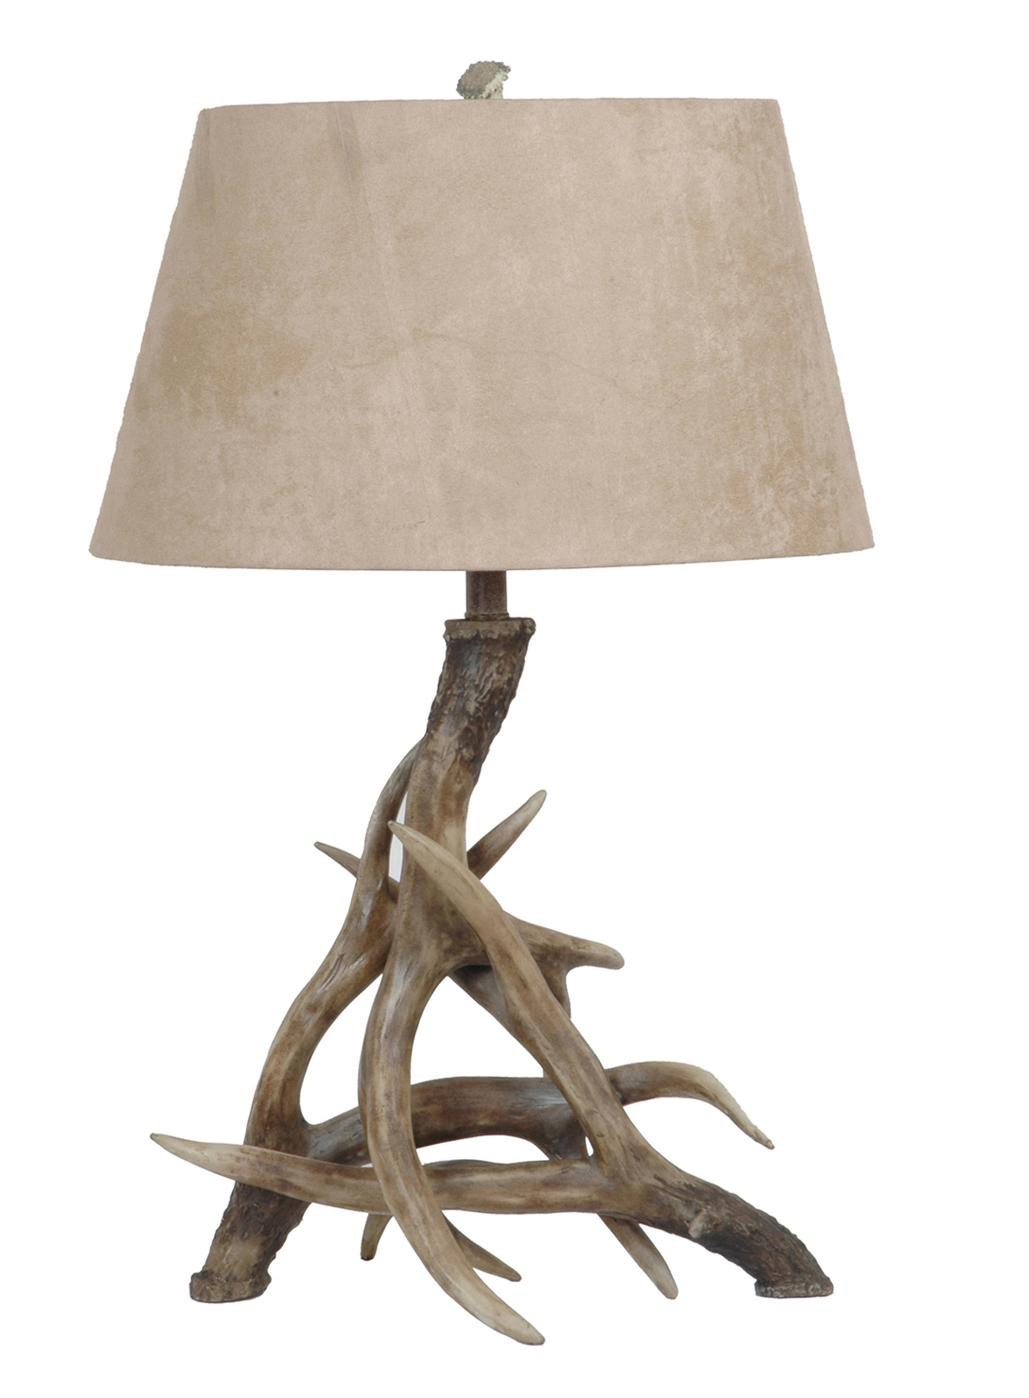 Combine faux suede and rustic wood legs for an an-home-feel inspired lamp. (View at bit.ly/Antler-Lamp)